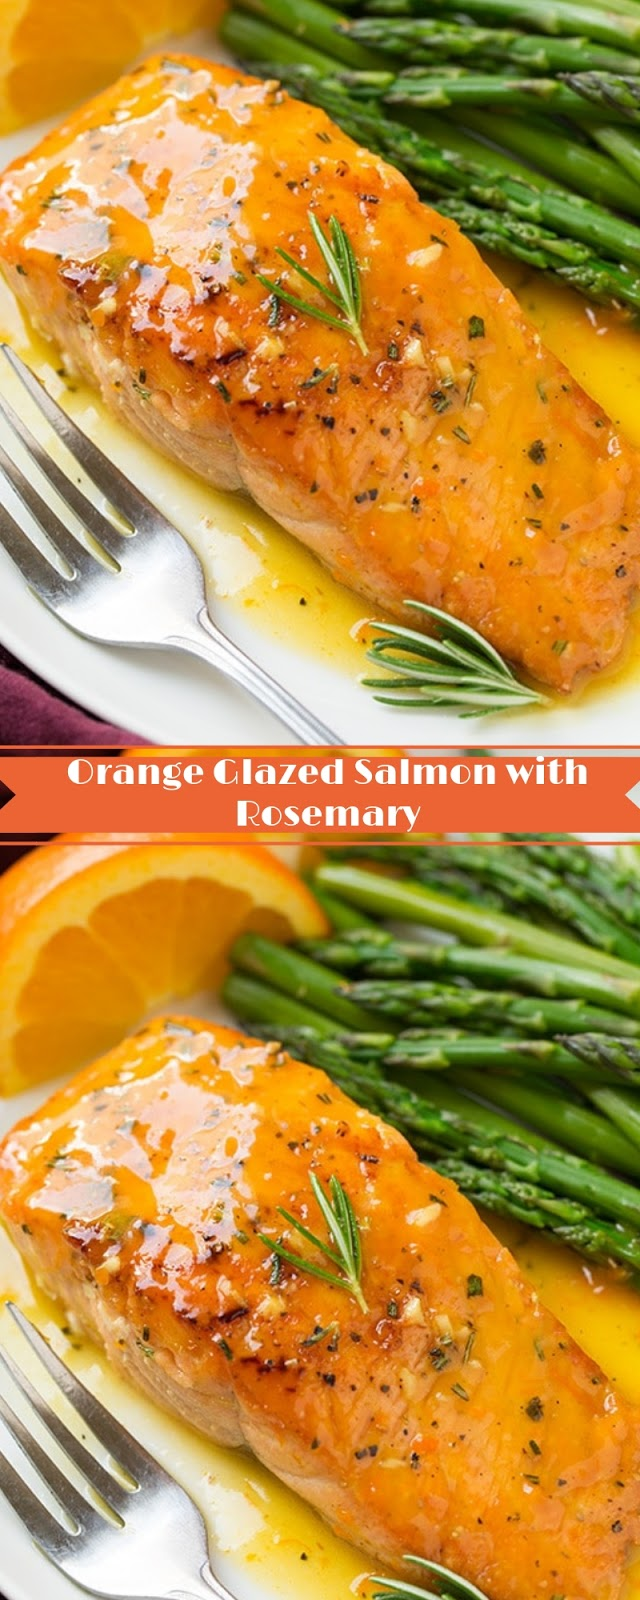 Orange Glazed Salmon with Rosemary